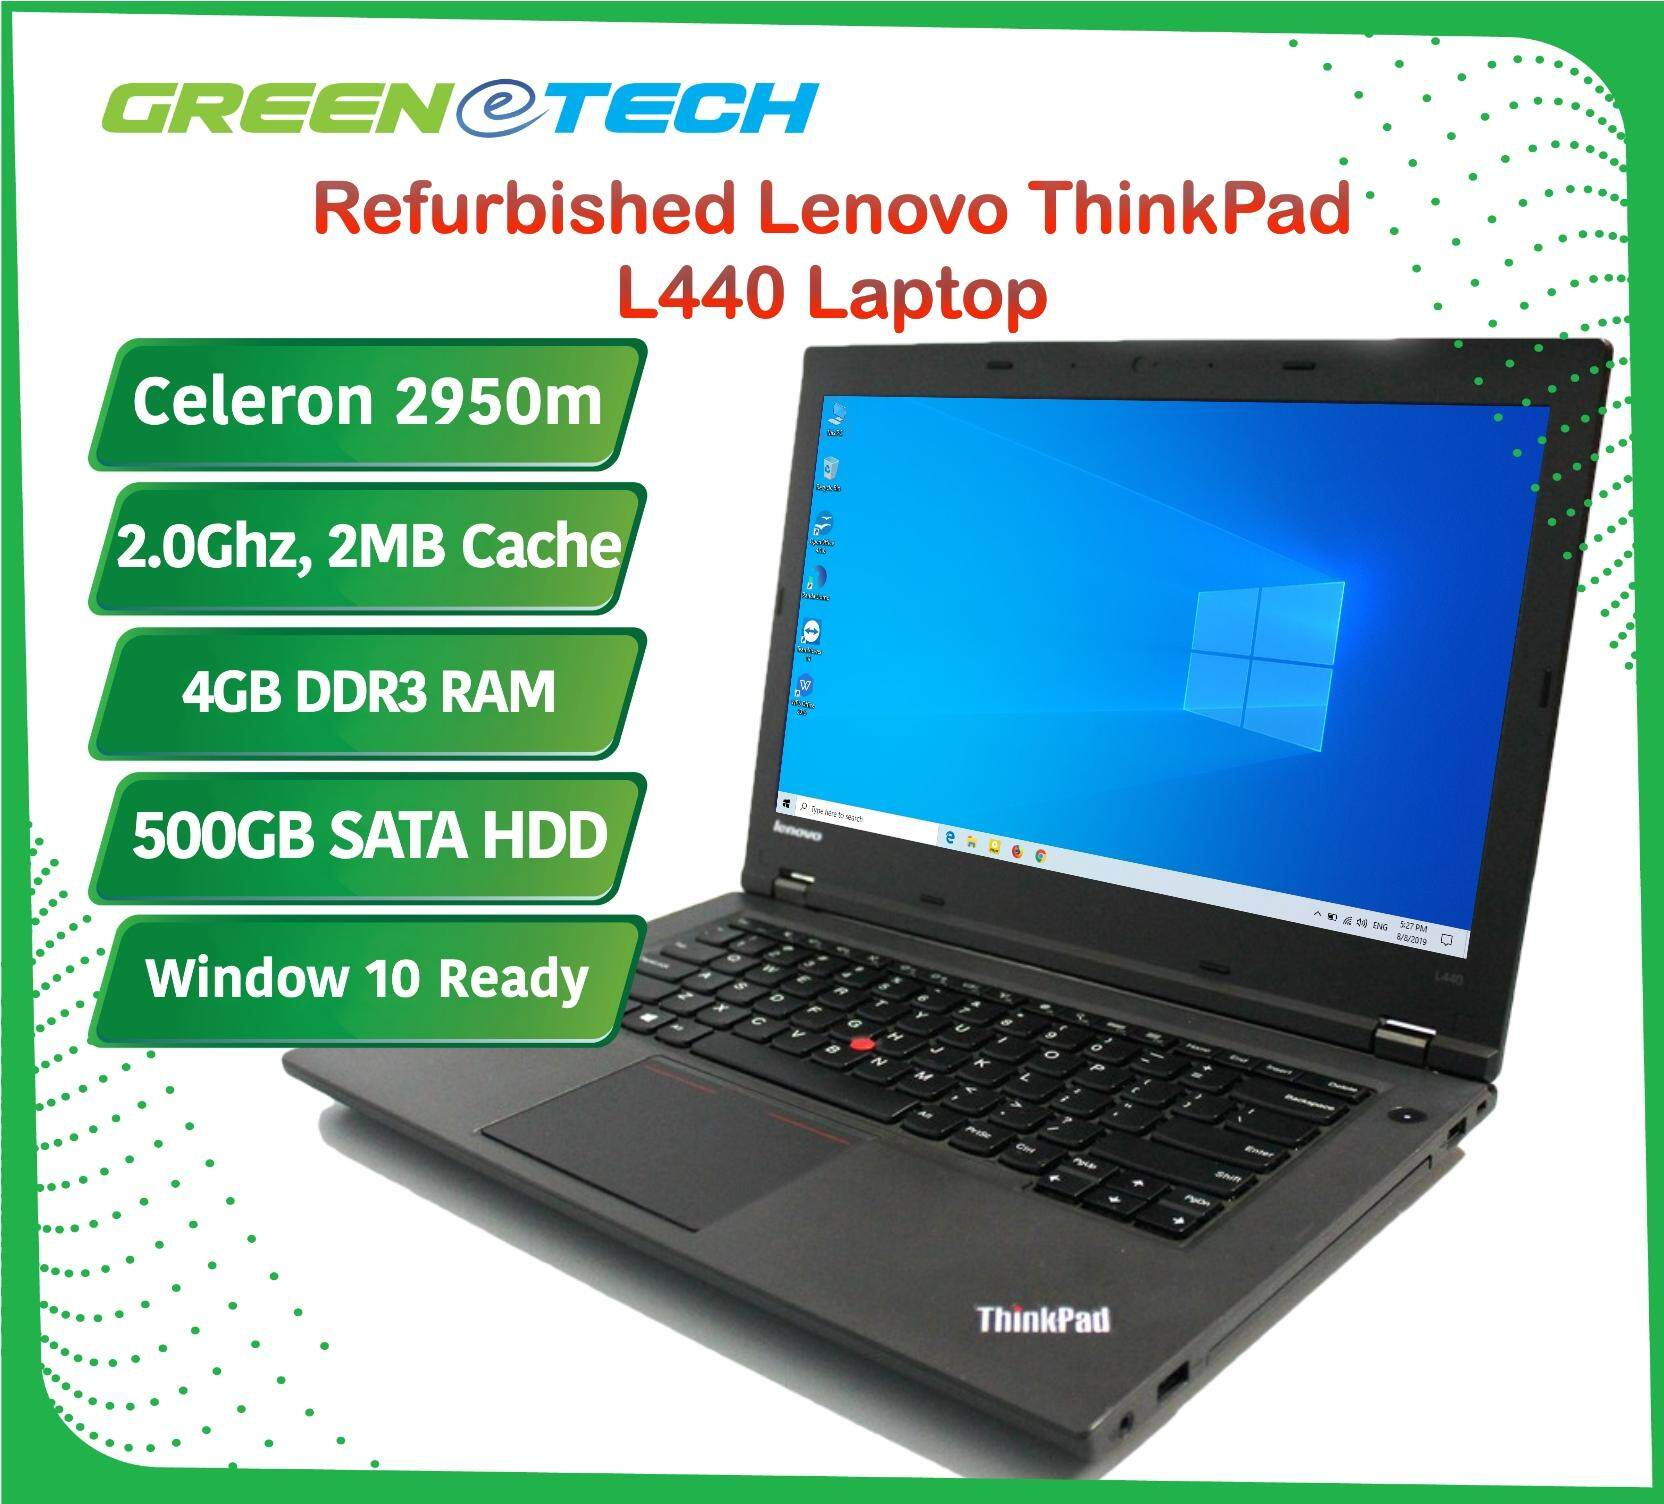 Refurbished Lenovo ThinkPad L440 Laptop Intel Celeron 2950m 2.0Ghz / 4GB DDR3 RAM / 500GB HDD / Win 10 Home Ready / 3 Months Warranty for Laptop /1 Months Warranty for Battery and Adaptor / Used Notebook Malaysia